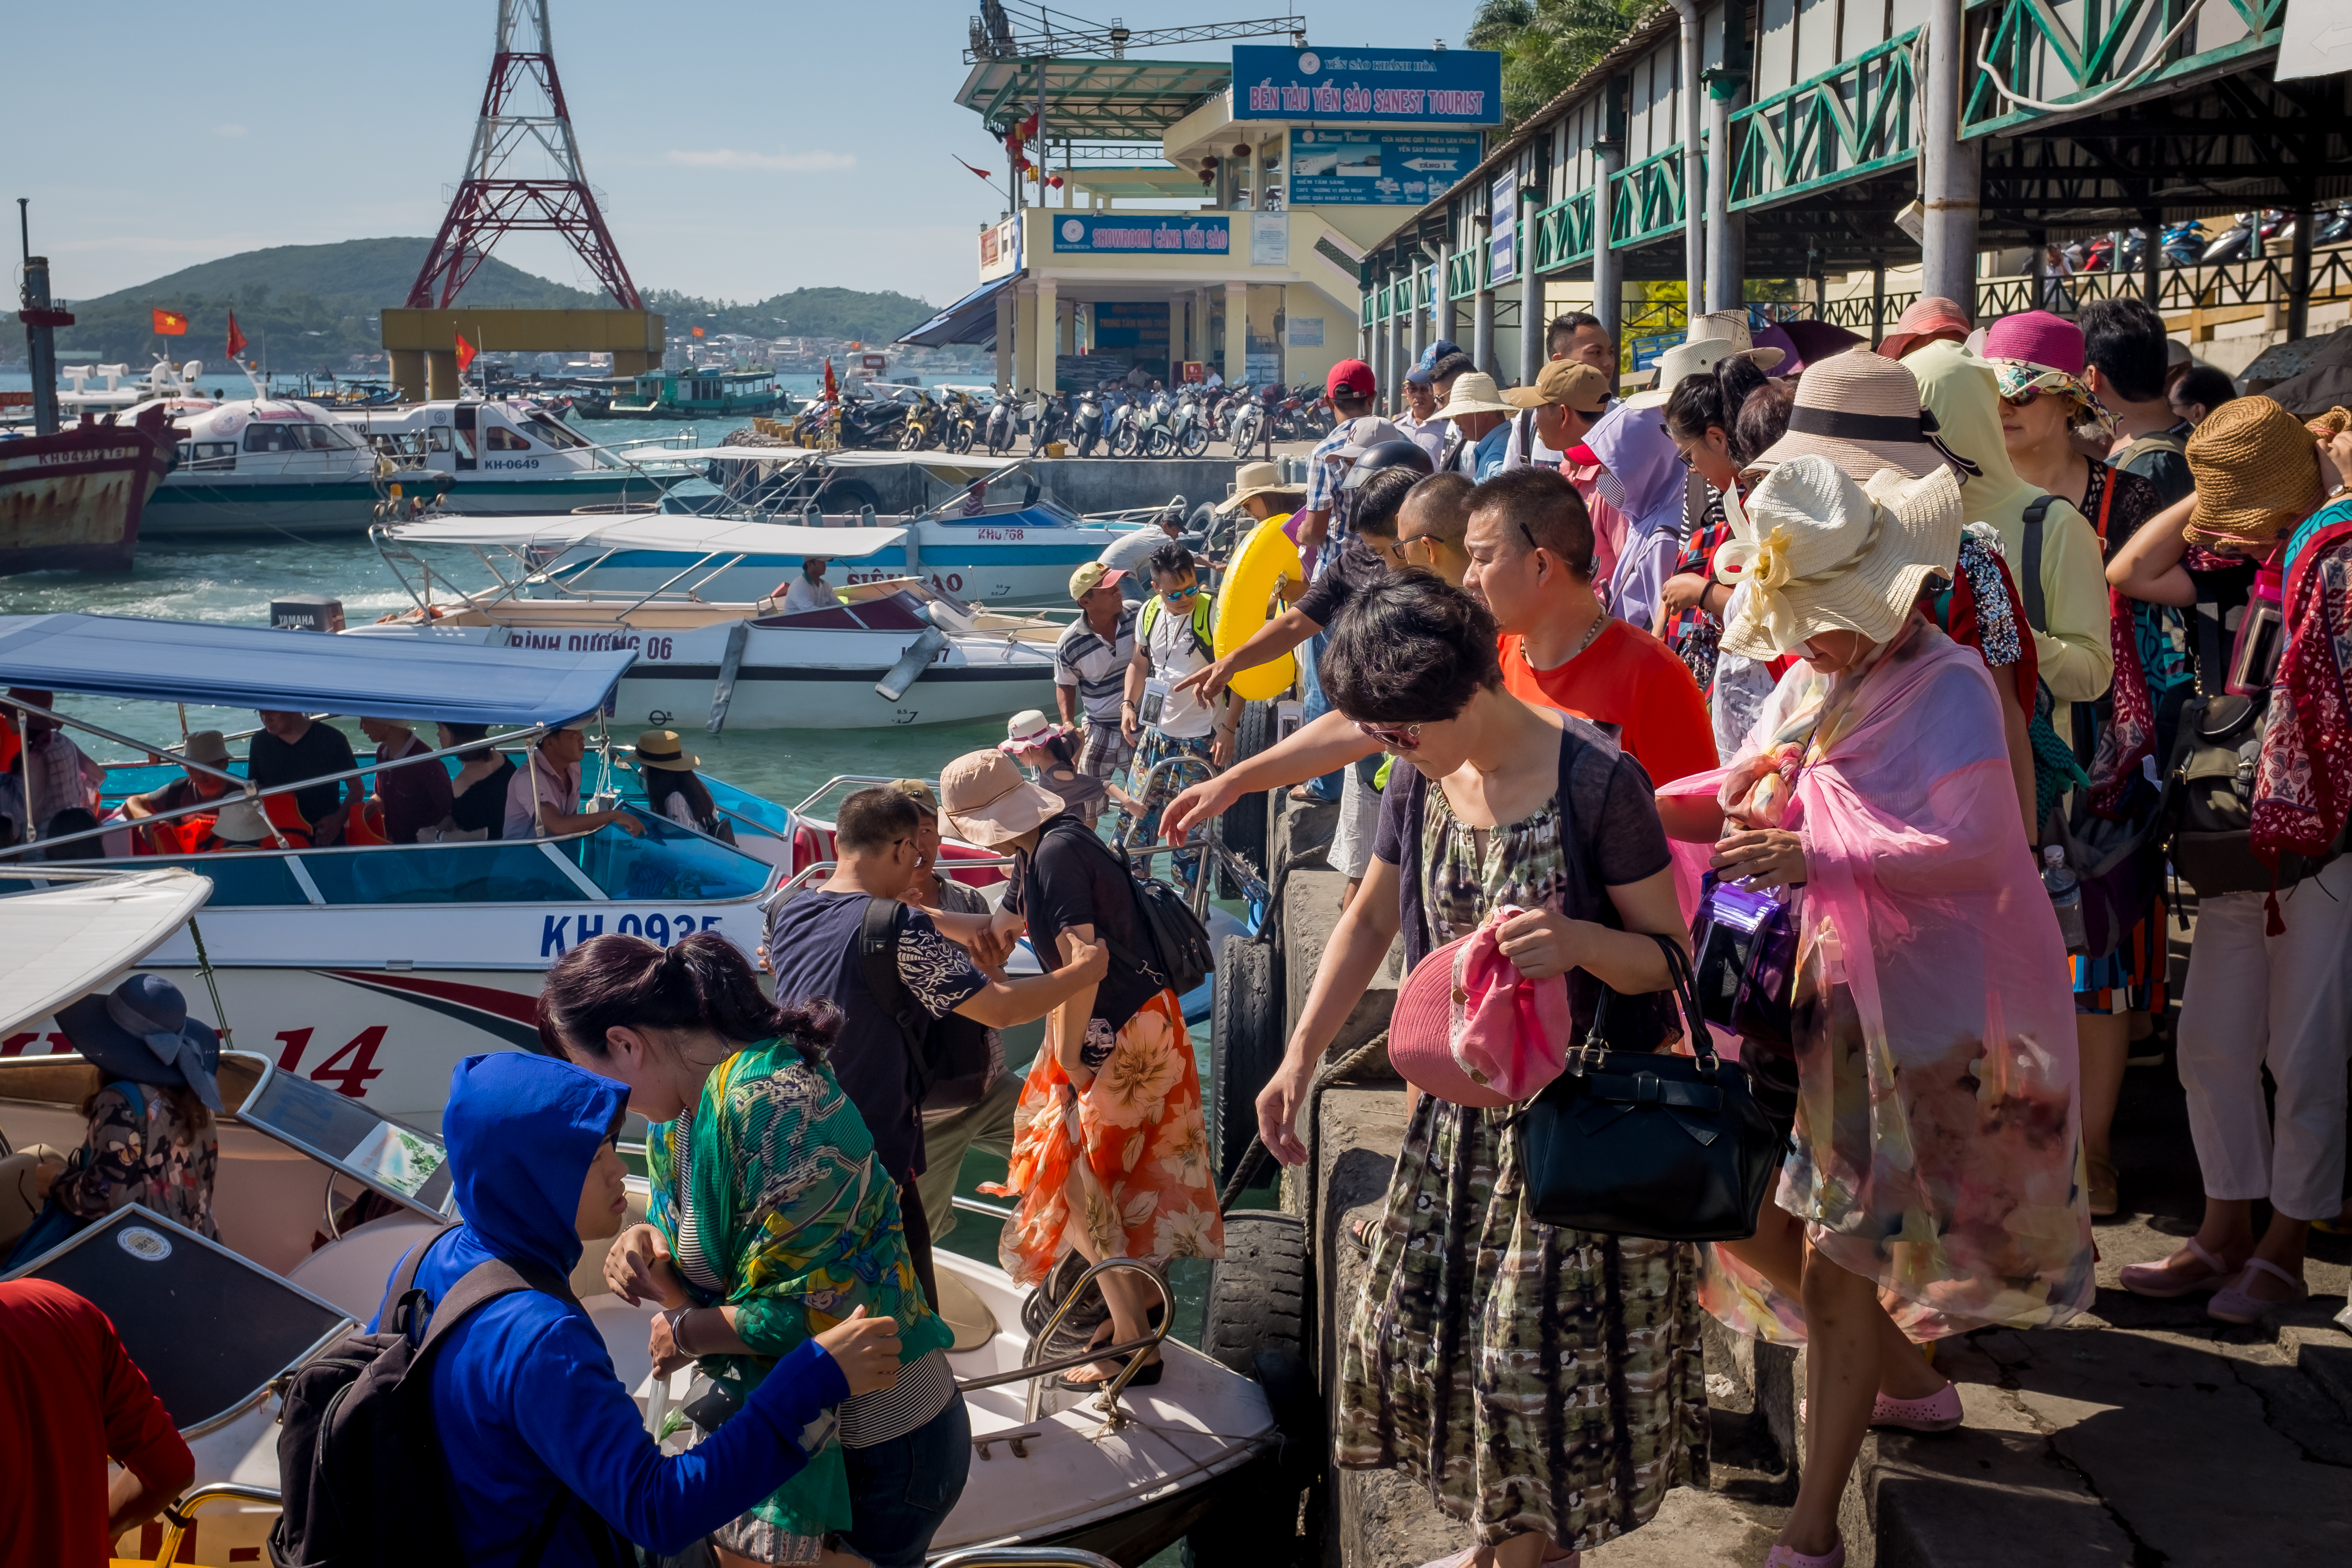 Chinese Tours Take Over The Bay Of Nha Trang